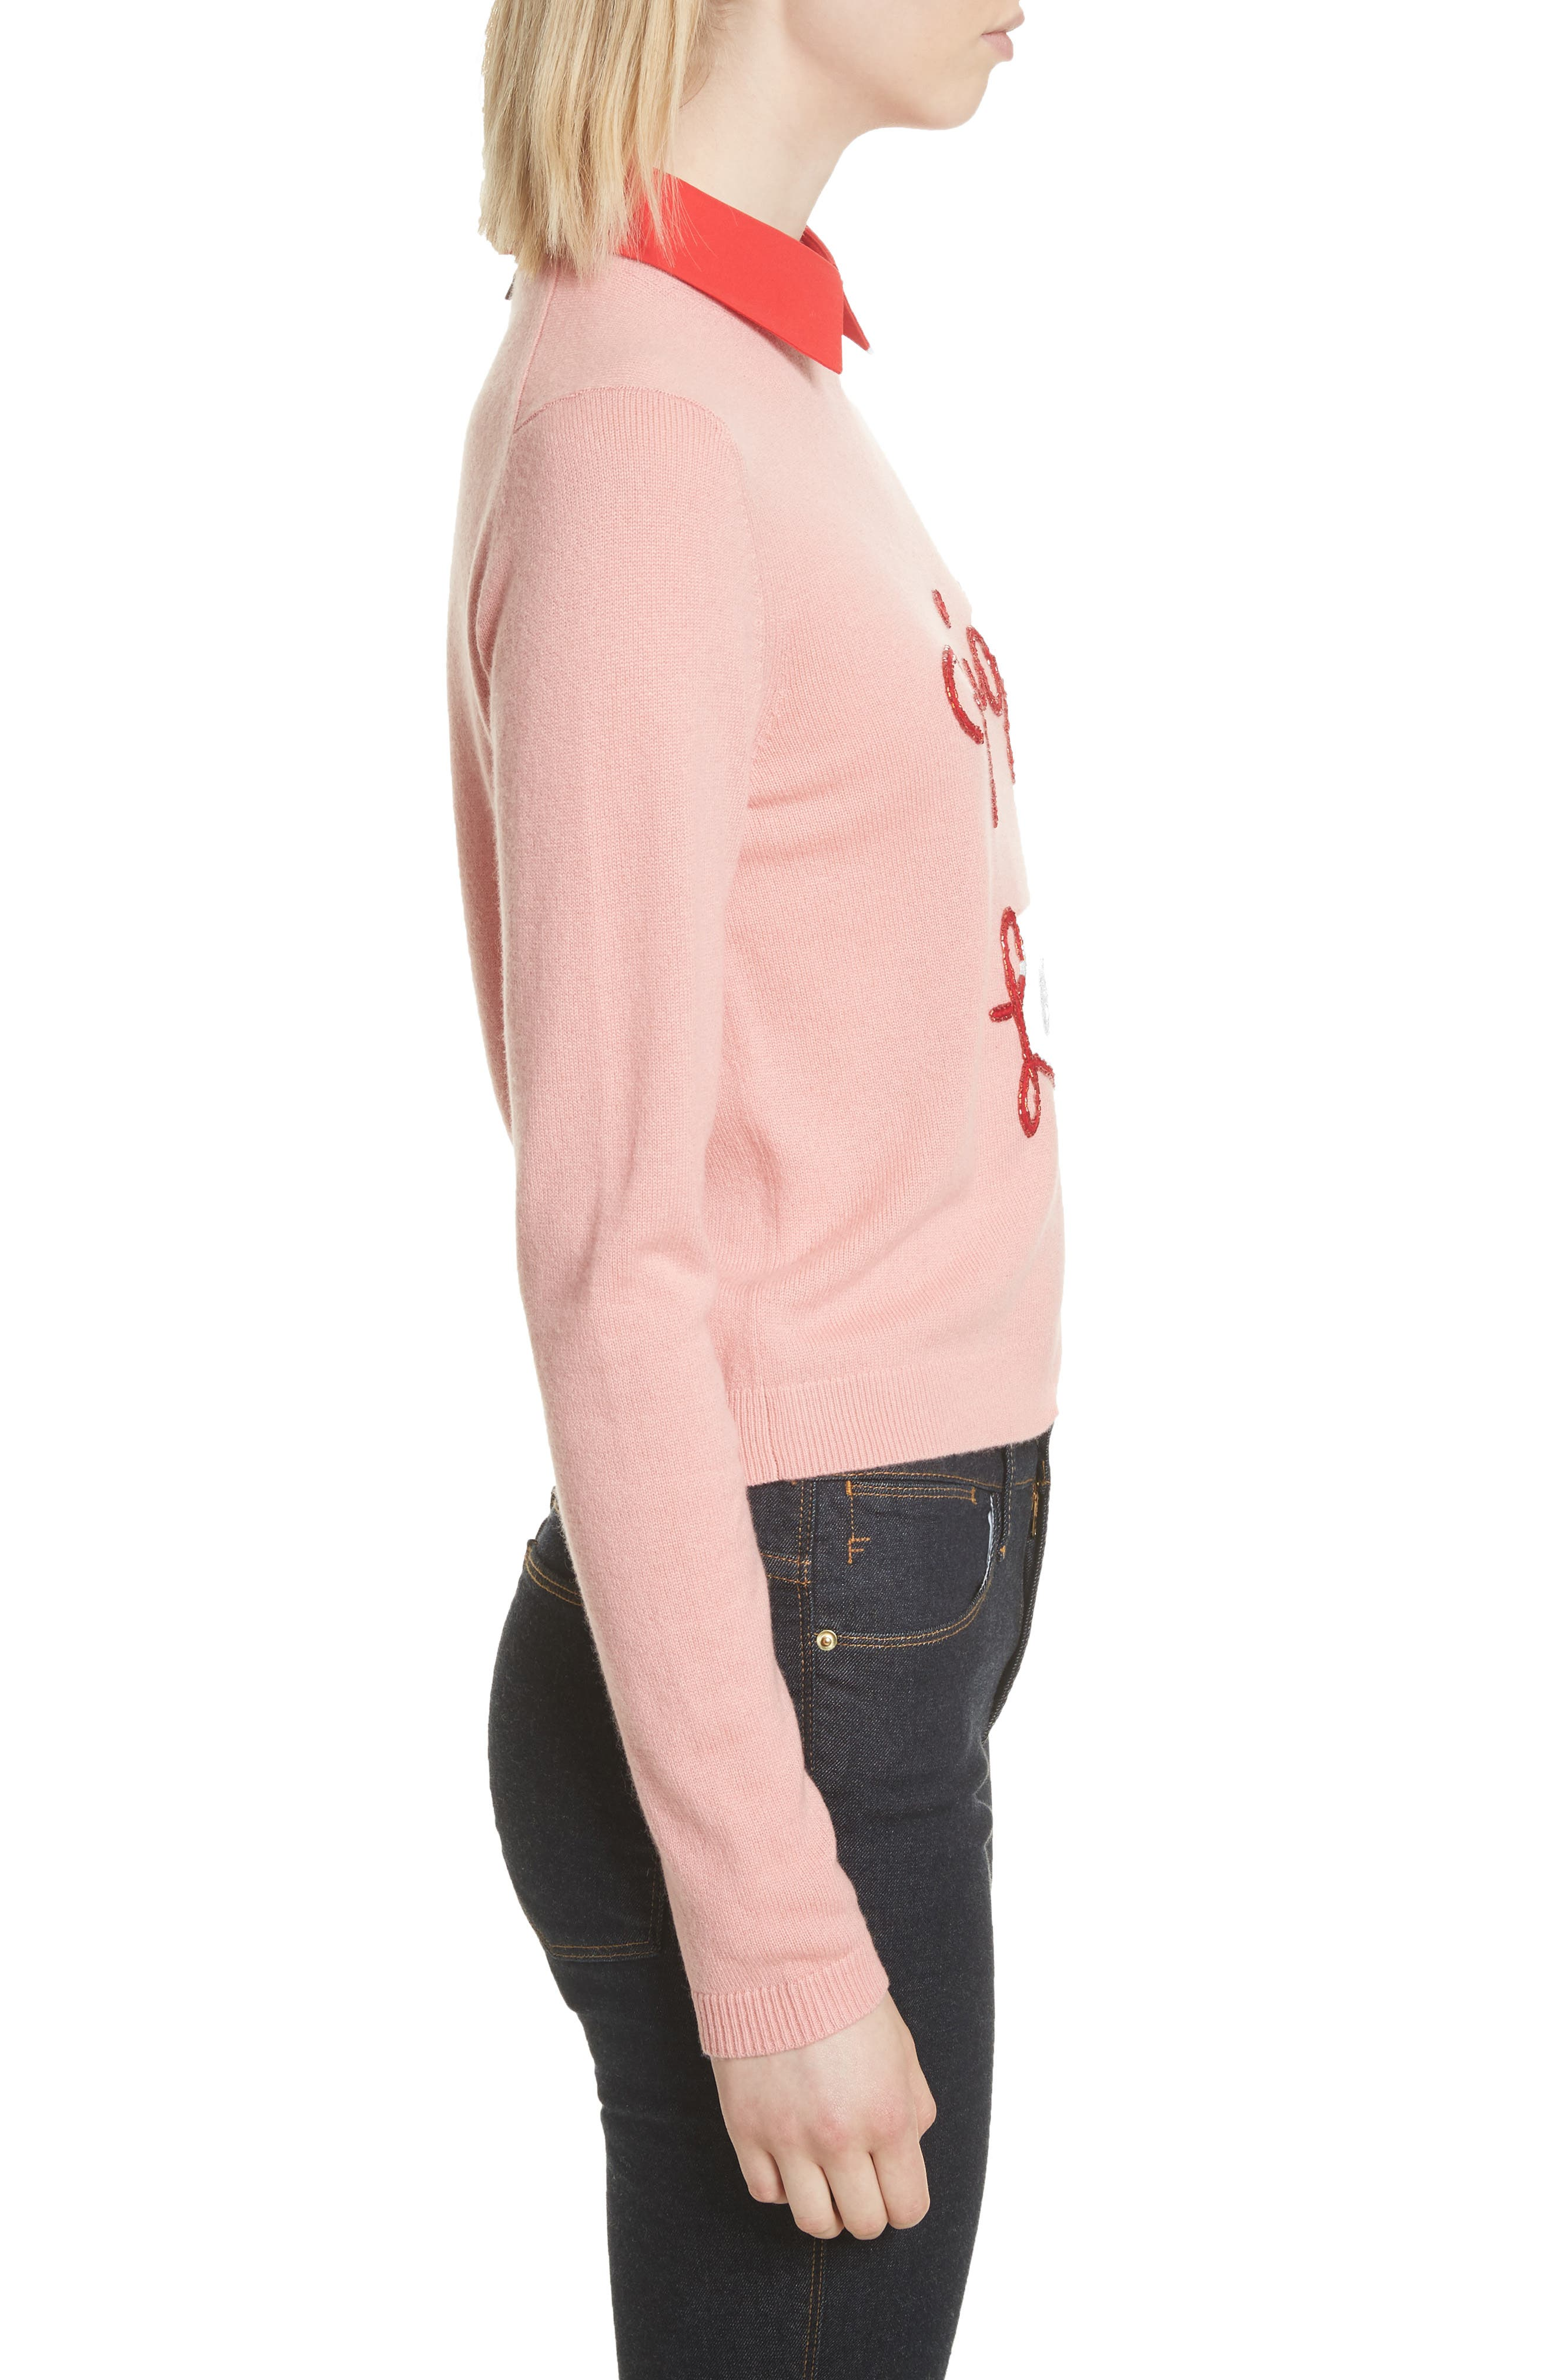 ALICE + OLIVIA,                             Big Love Embroidered Cashmere Sweater,                             Alternate thumbnail 3, color,                             651